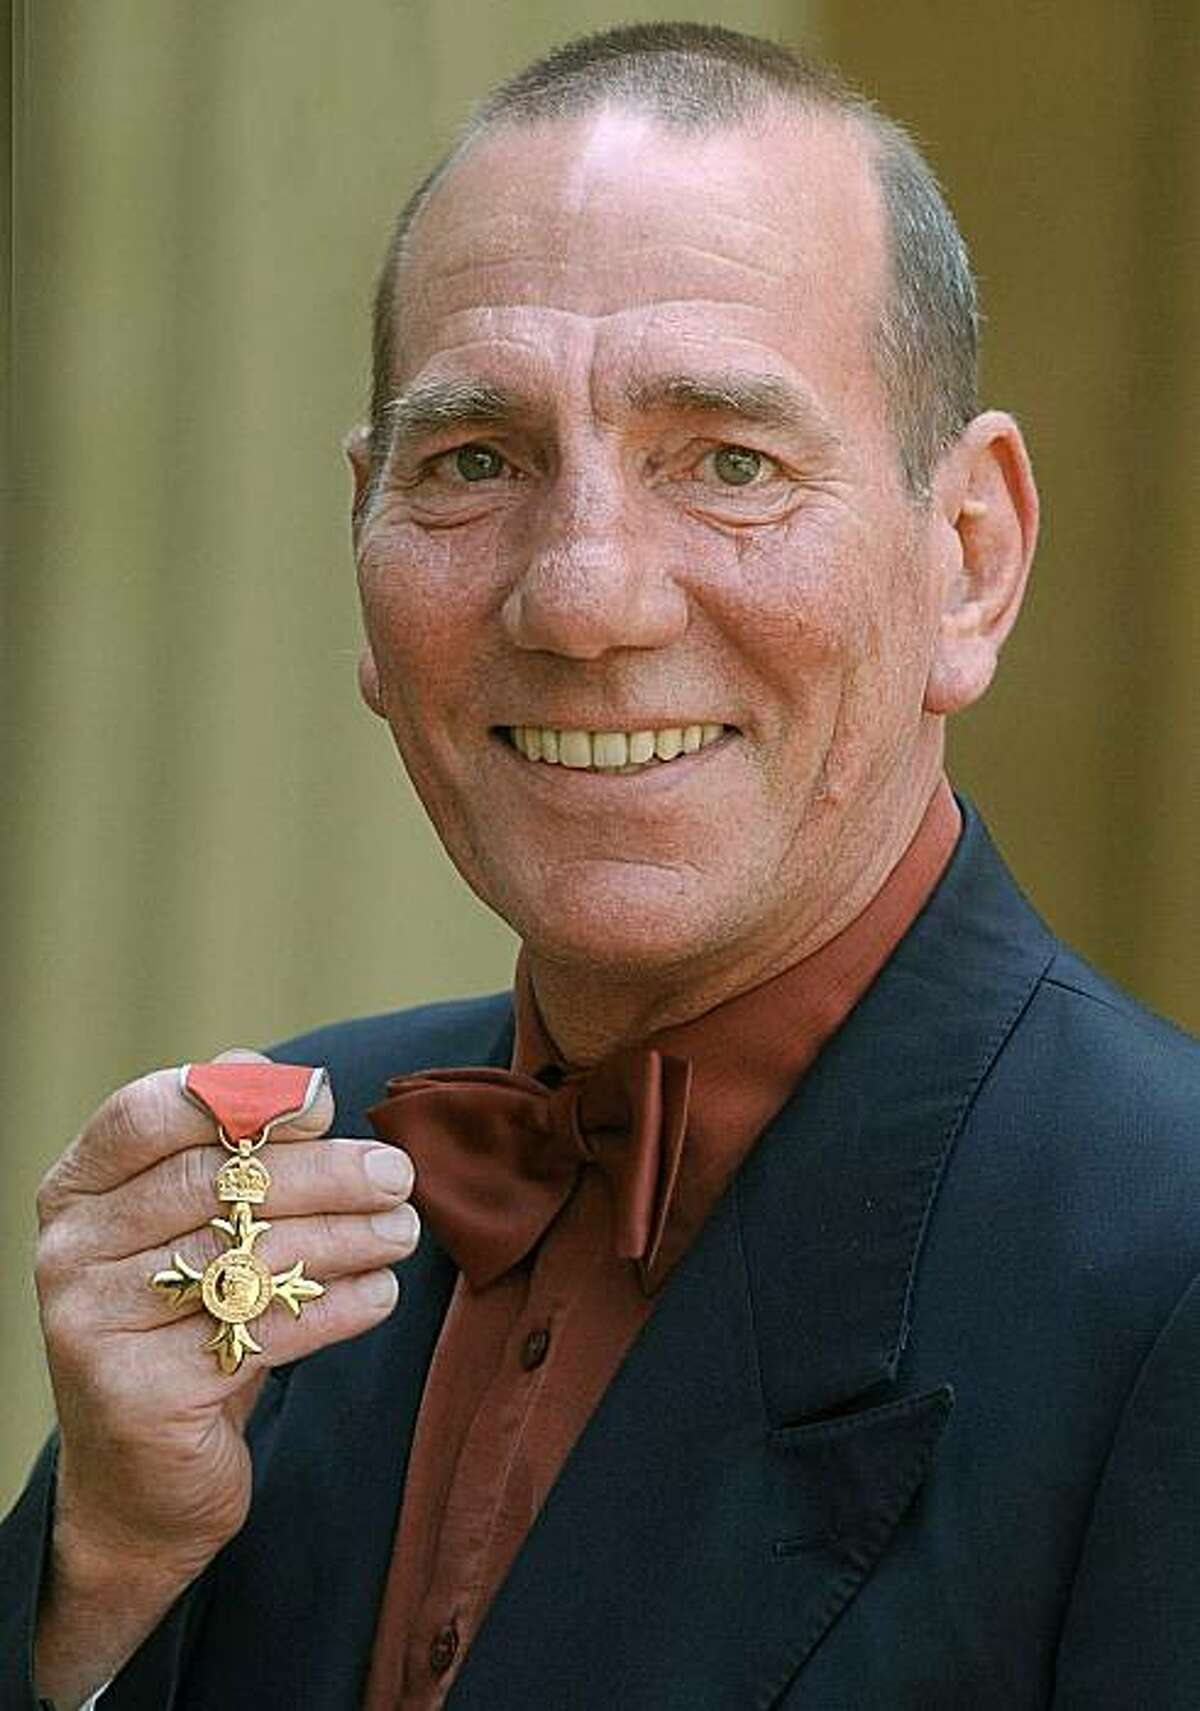 A Wednesday, June 9, 2004 photo from files showing British actor Peter Postlethwaite displaying his Order of the British Empire or OBE, shortly after the presentation at Buckingham Palace in London. Britain's Press Association is reporting Monday,Jan. 3, 2011 that decorated film actor Pete Postlethwaite has died at the age of 64. It quotes longtime friend Andrew Richardson as saying Monday that Postlethwaite died in hospital in Shropshire, central England, after a long illness. Richardson said Postlethwaite died Sunday. He had been receiving treatment for cancer.